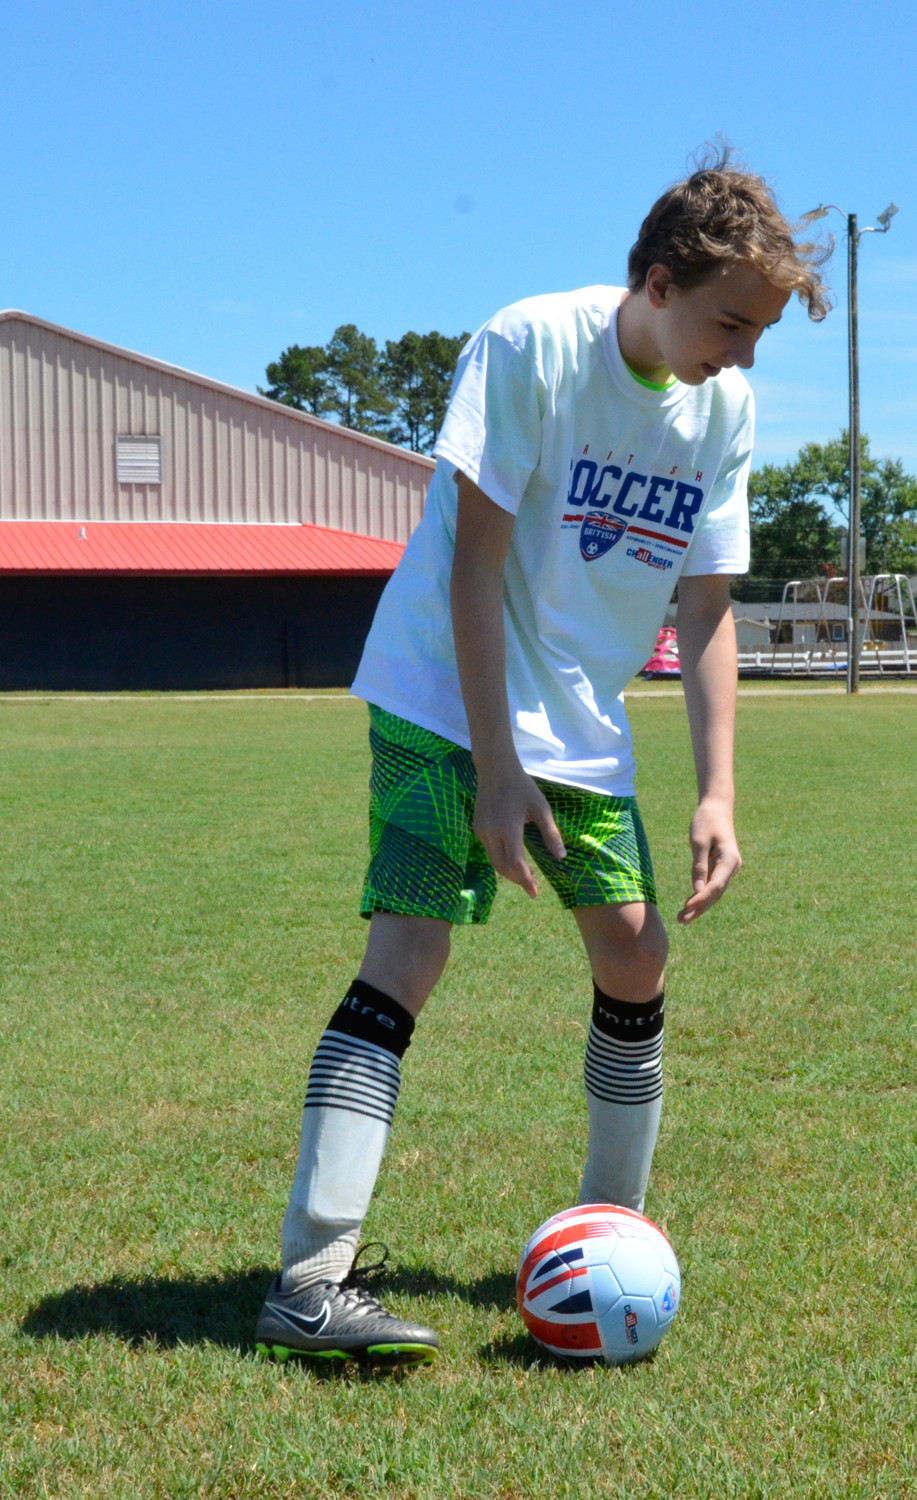 After lunch, Anthony Moore prepares for a throw-in during 3-on-3 drills at Al Woodall Municipal Park. He and 11 other youngsters will continue to learn soccer fundamentals from Challenger British Soccer Camp instructor James McIvor, through Friday.